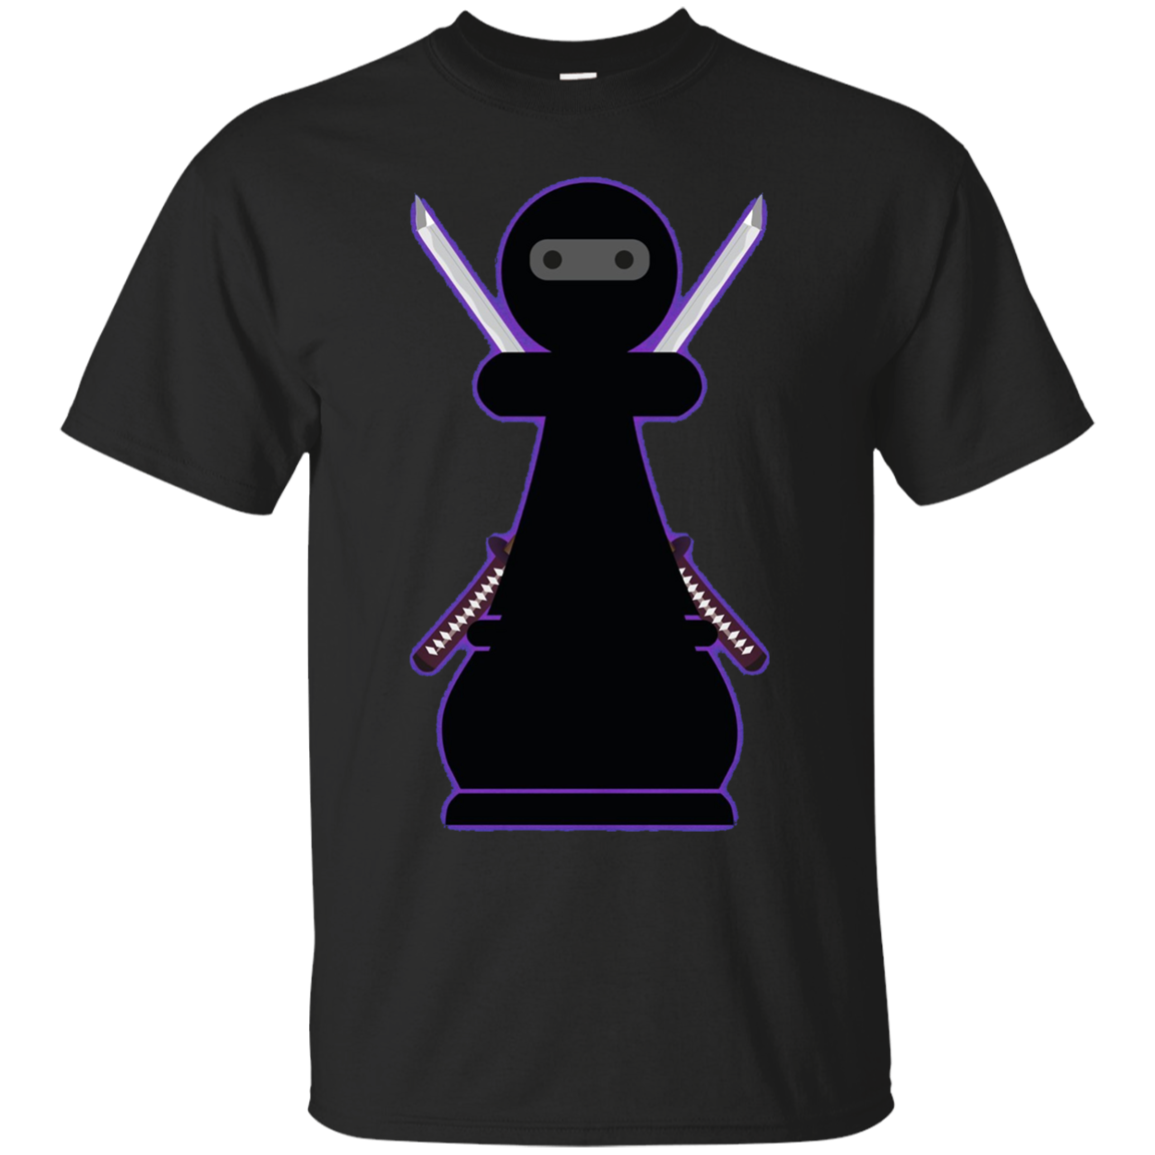 Gift for Chess Player - Chess T Shirt - Chess Ninja Pawn